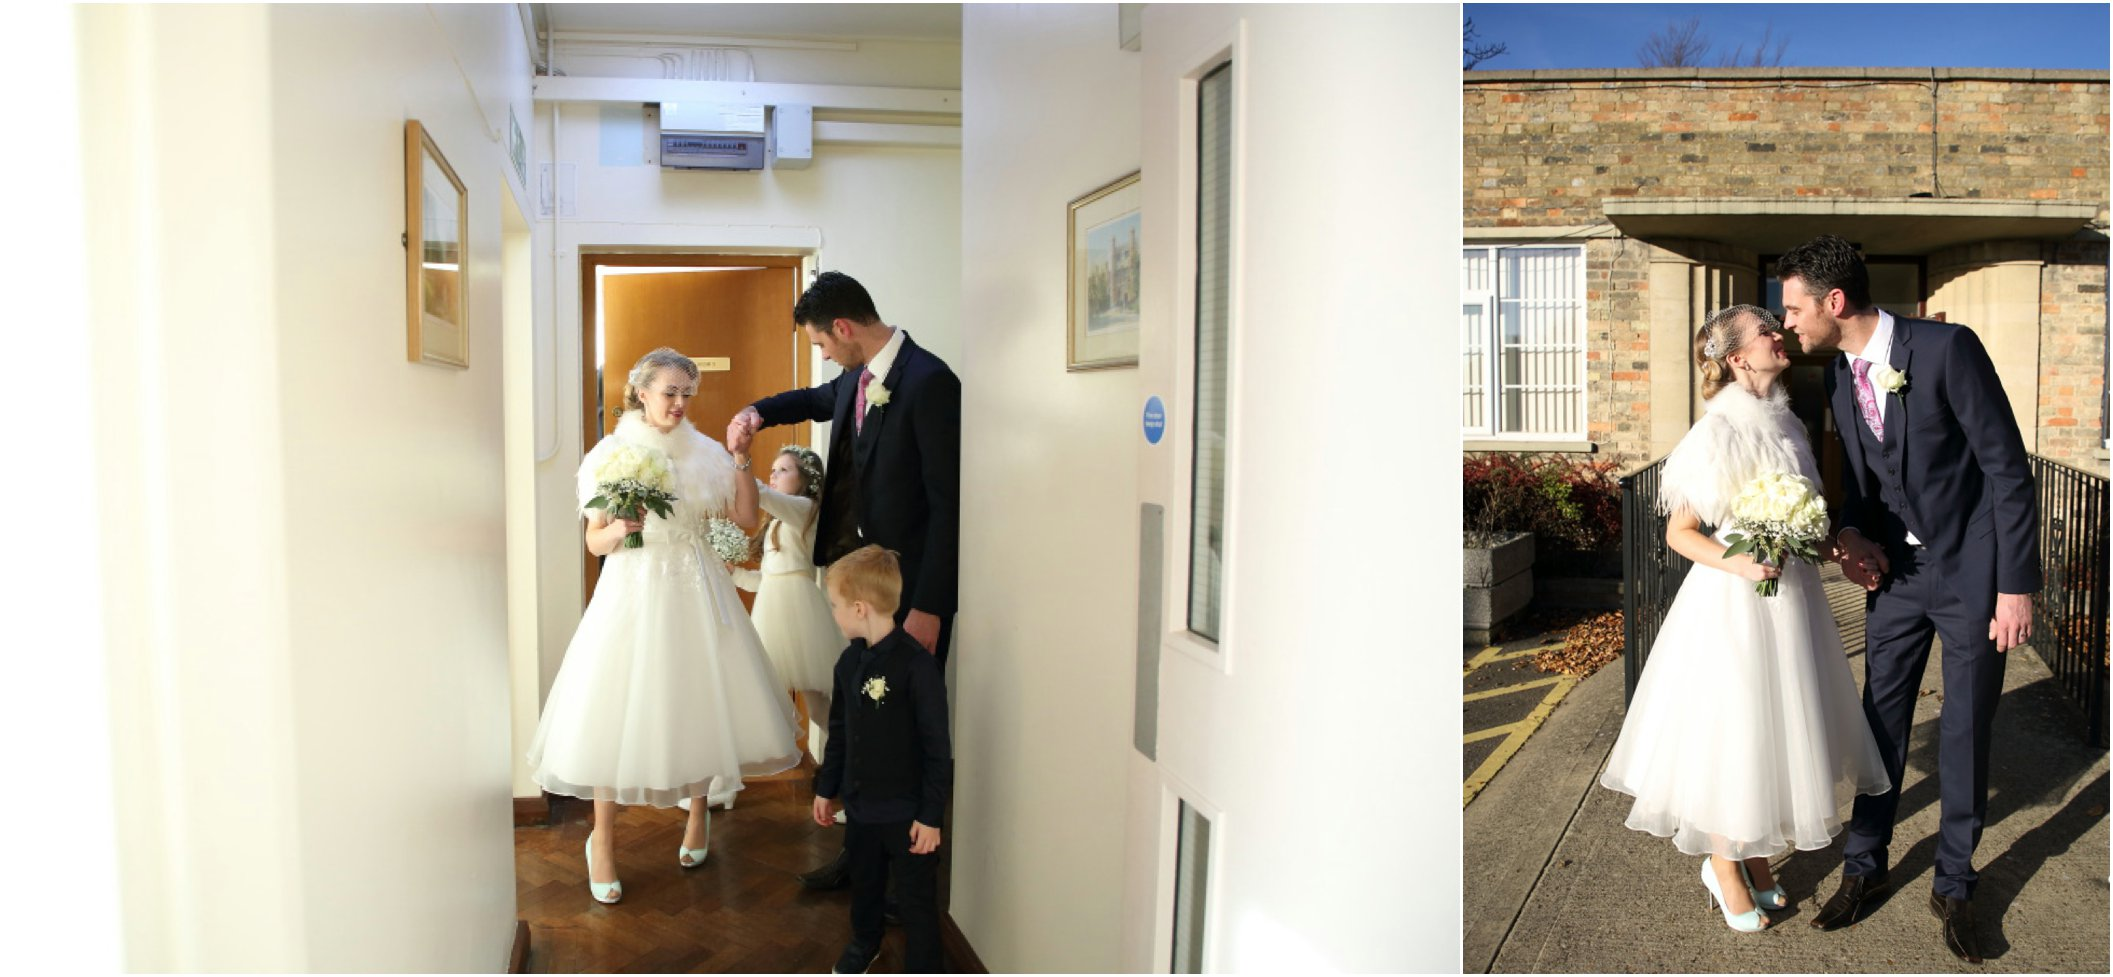 informal wedding photography in Cambridge